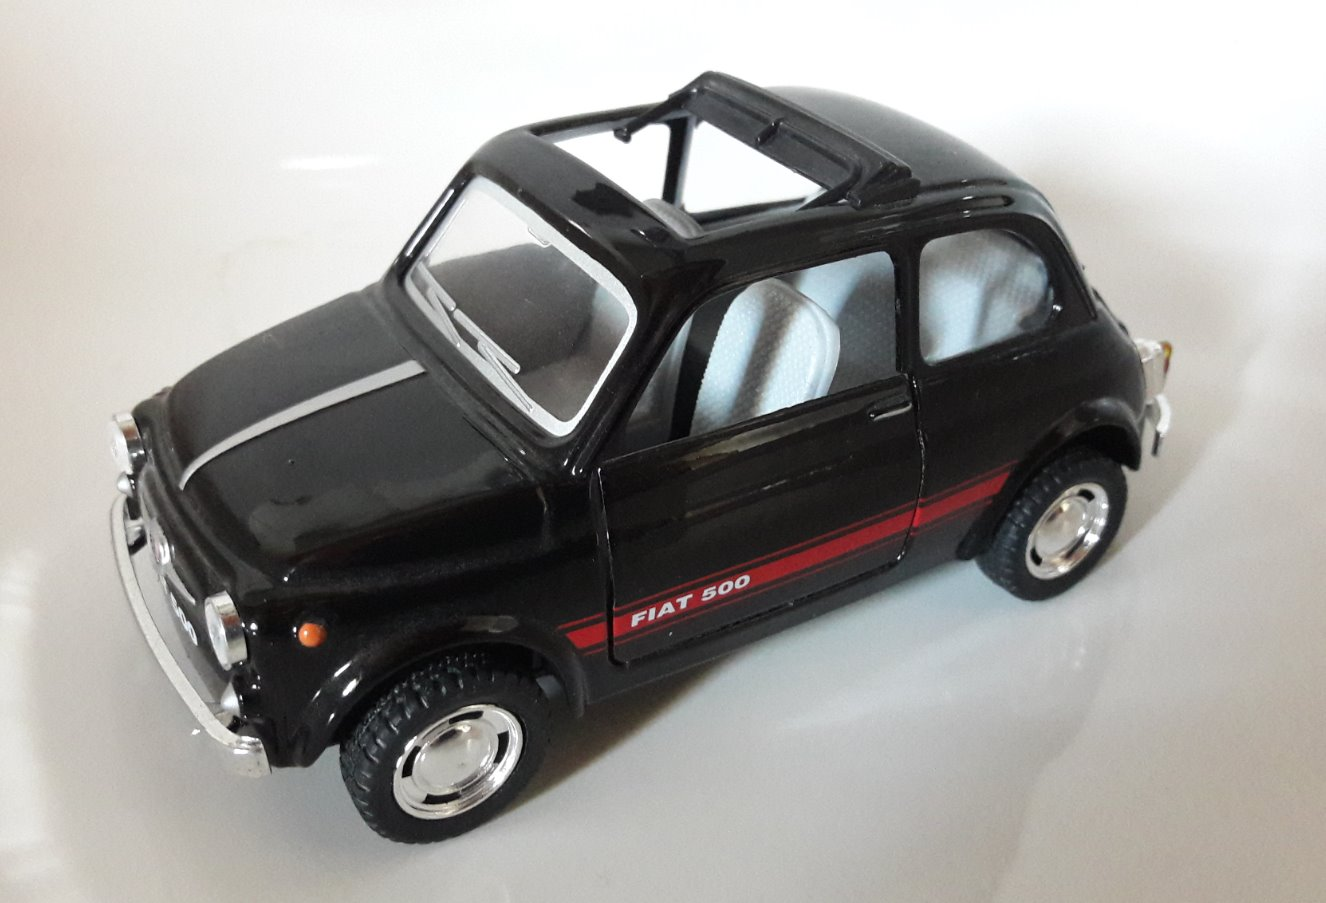 Fiat 500 Toy Car, Die Cast, And Hot Wheels - Tettuccio aperto (2015) front image (front cover)